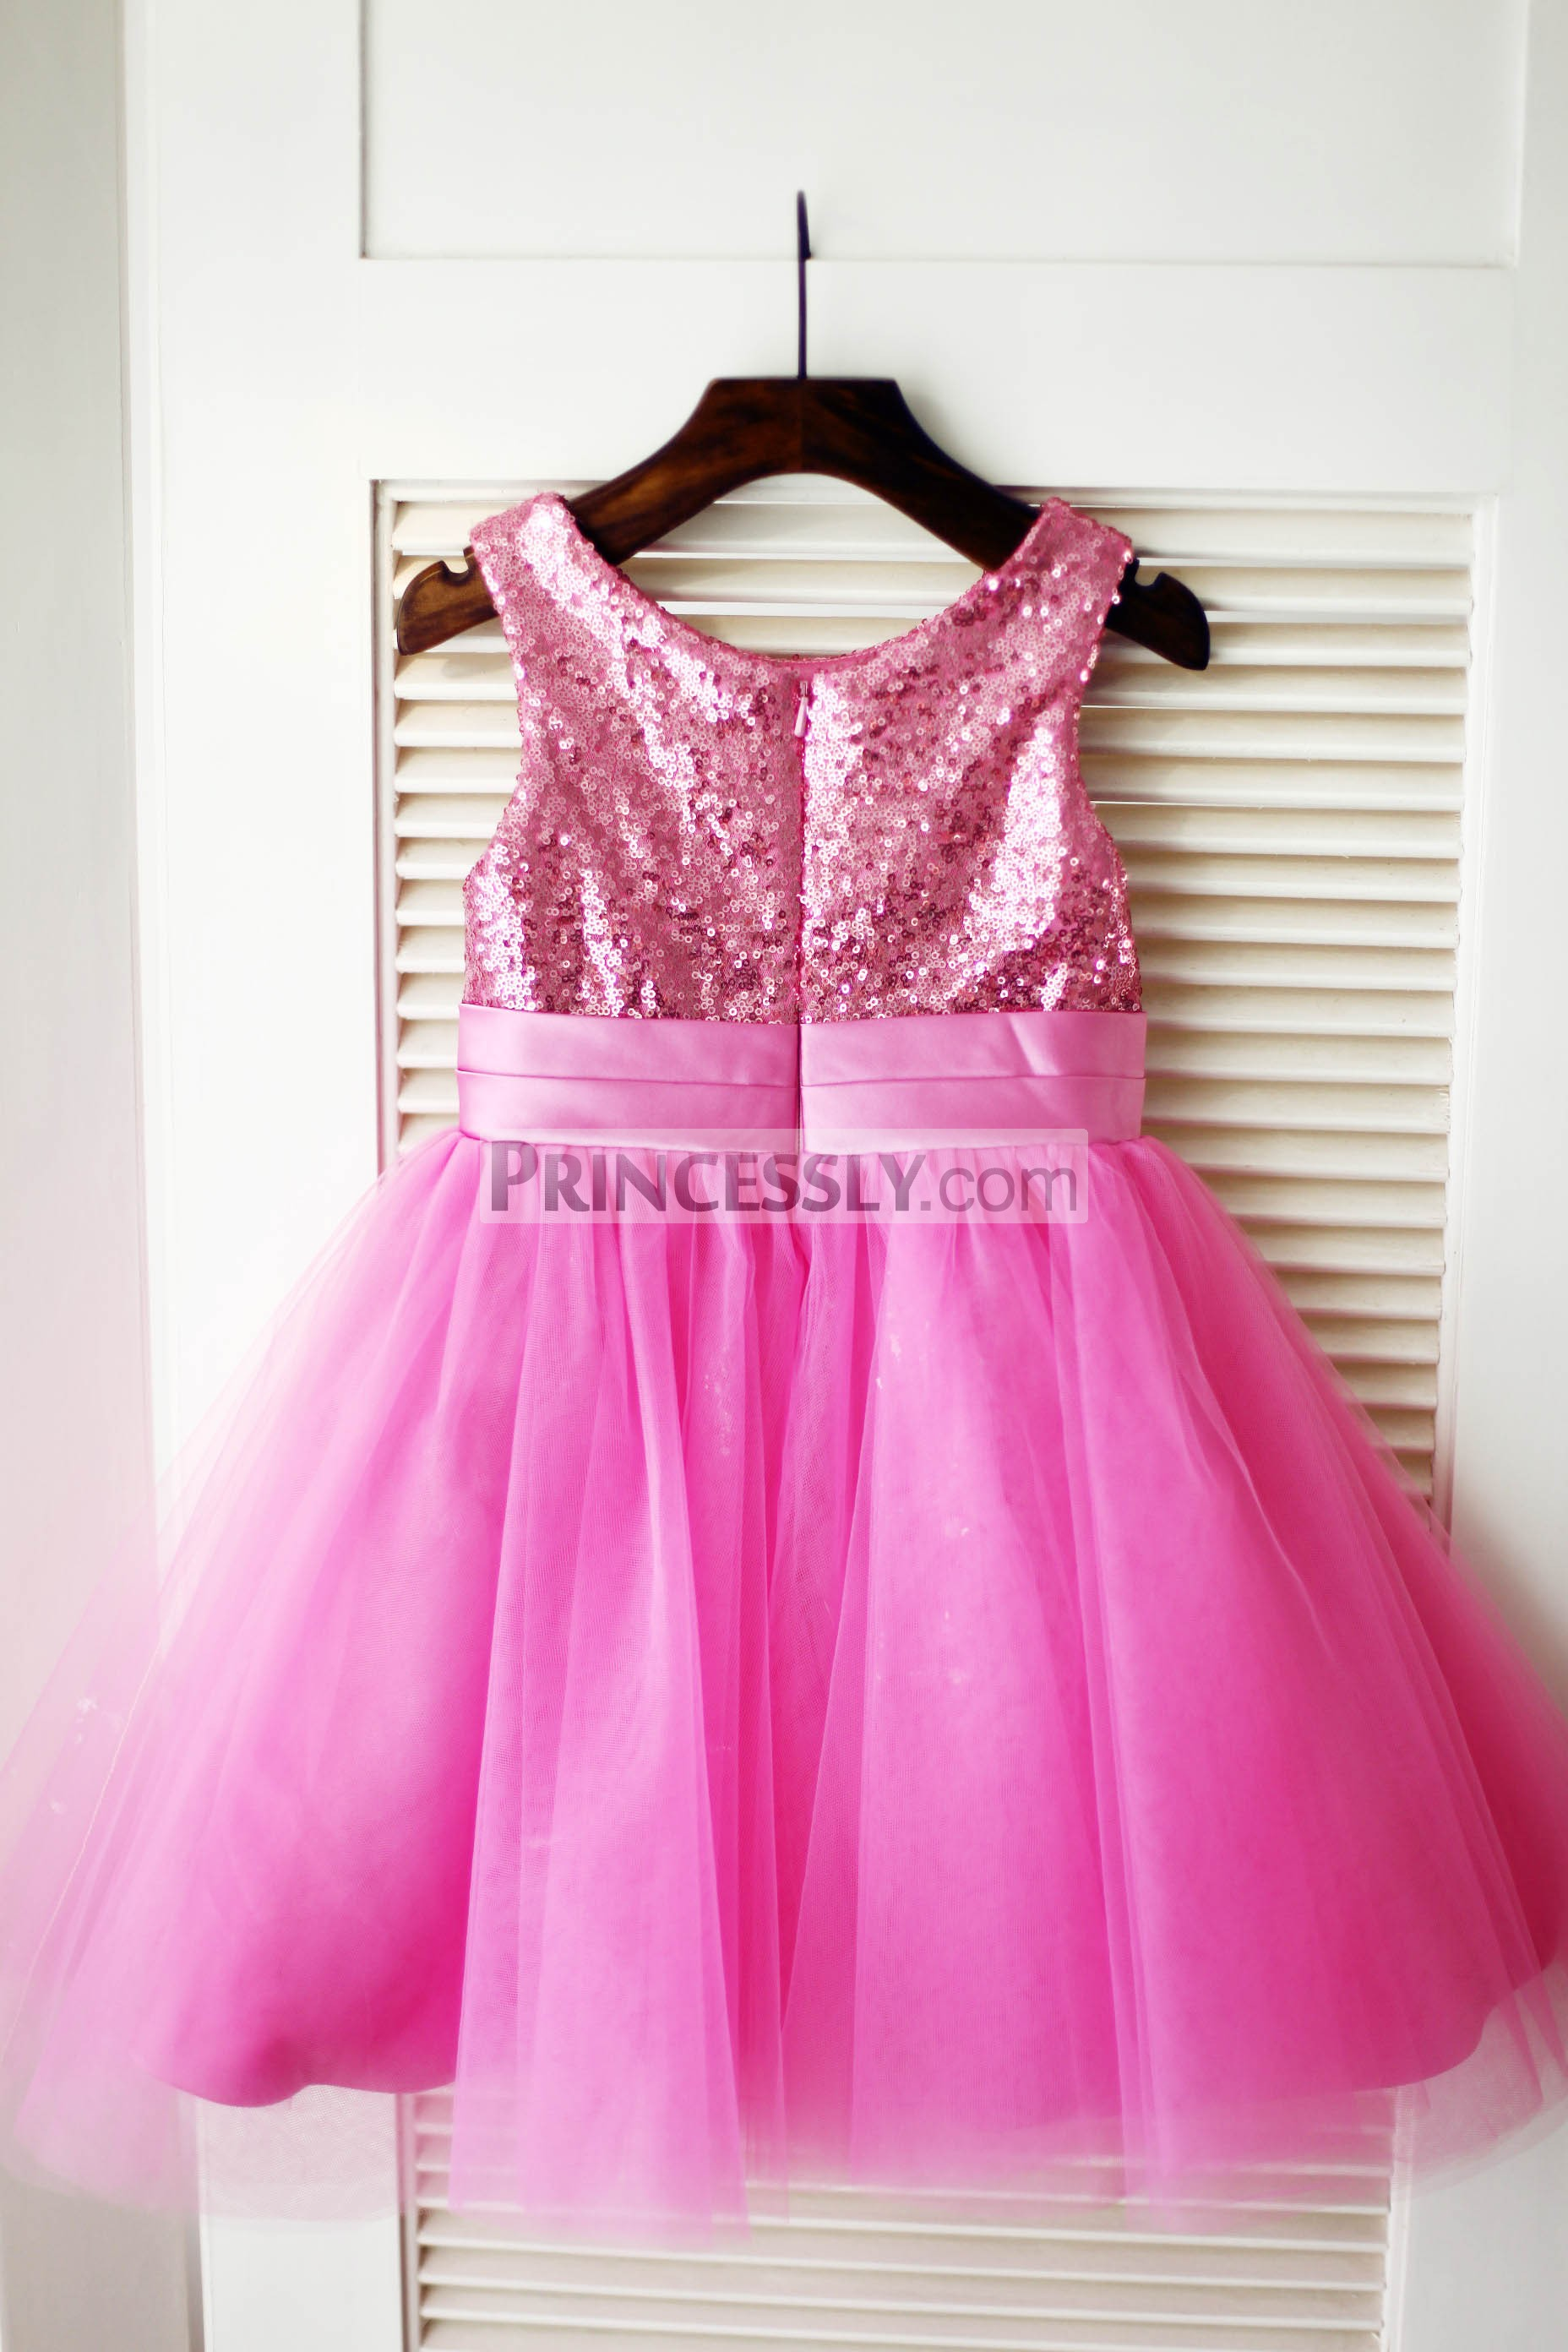 Hot Pink Sequins Tulle Fully Lined Wedding Baby Girl Dress